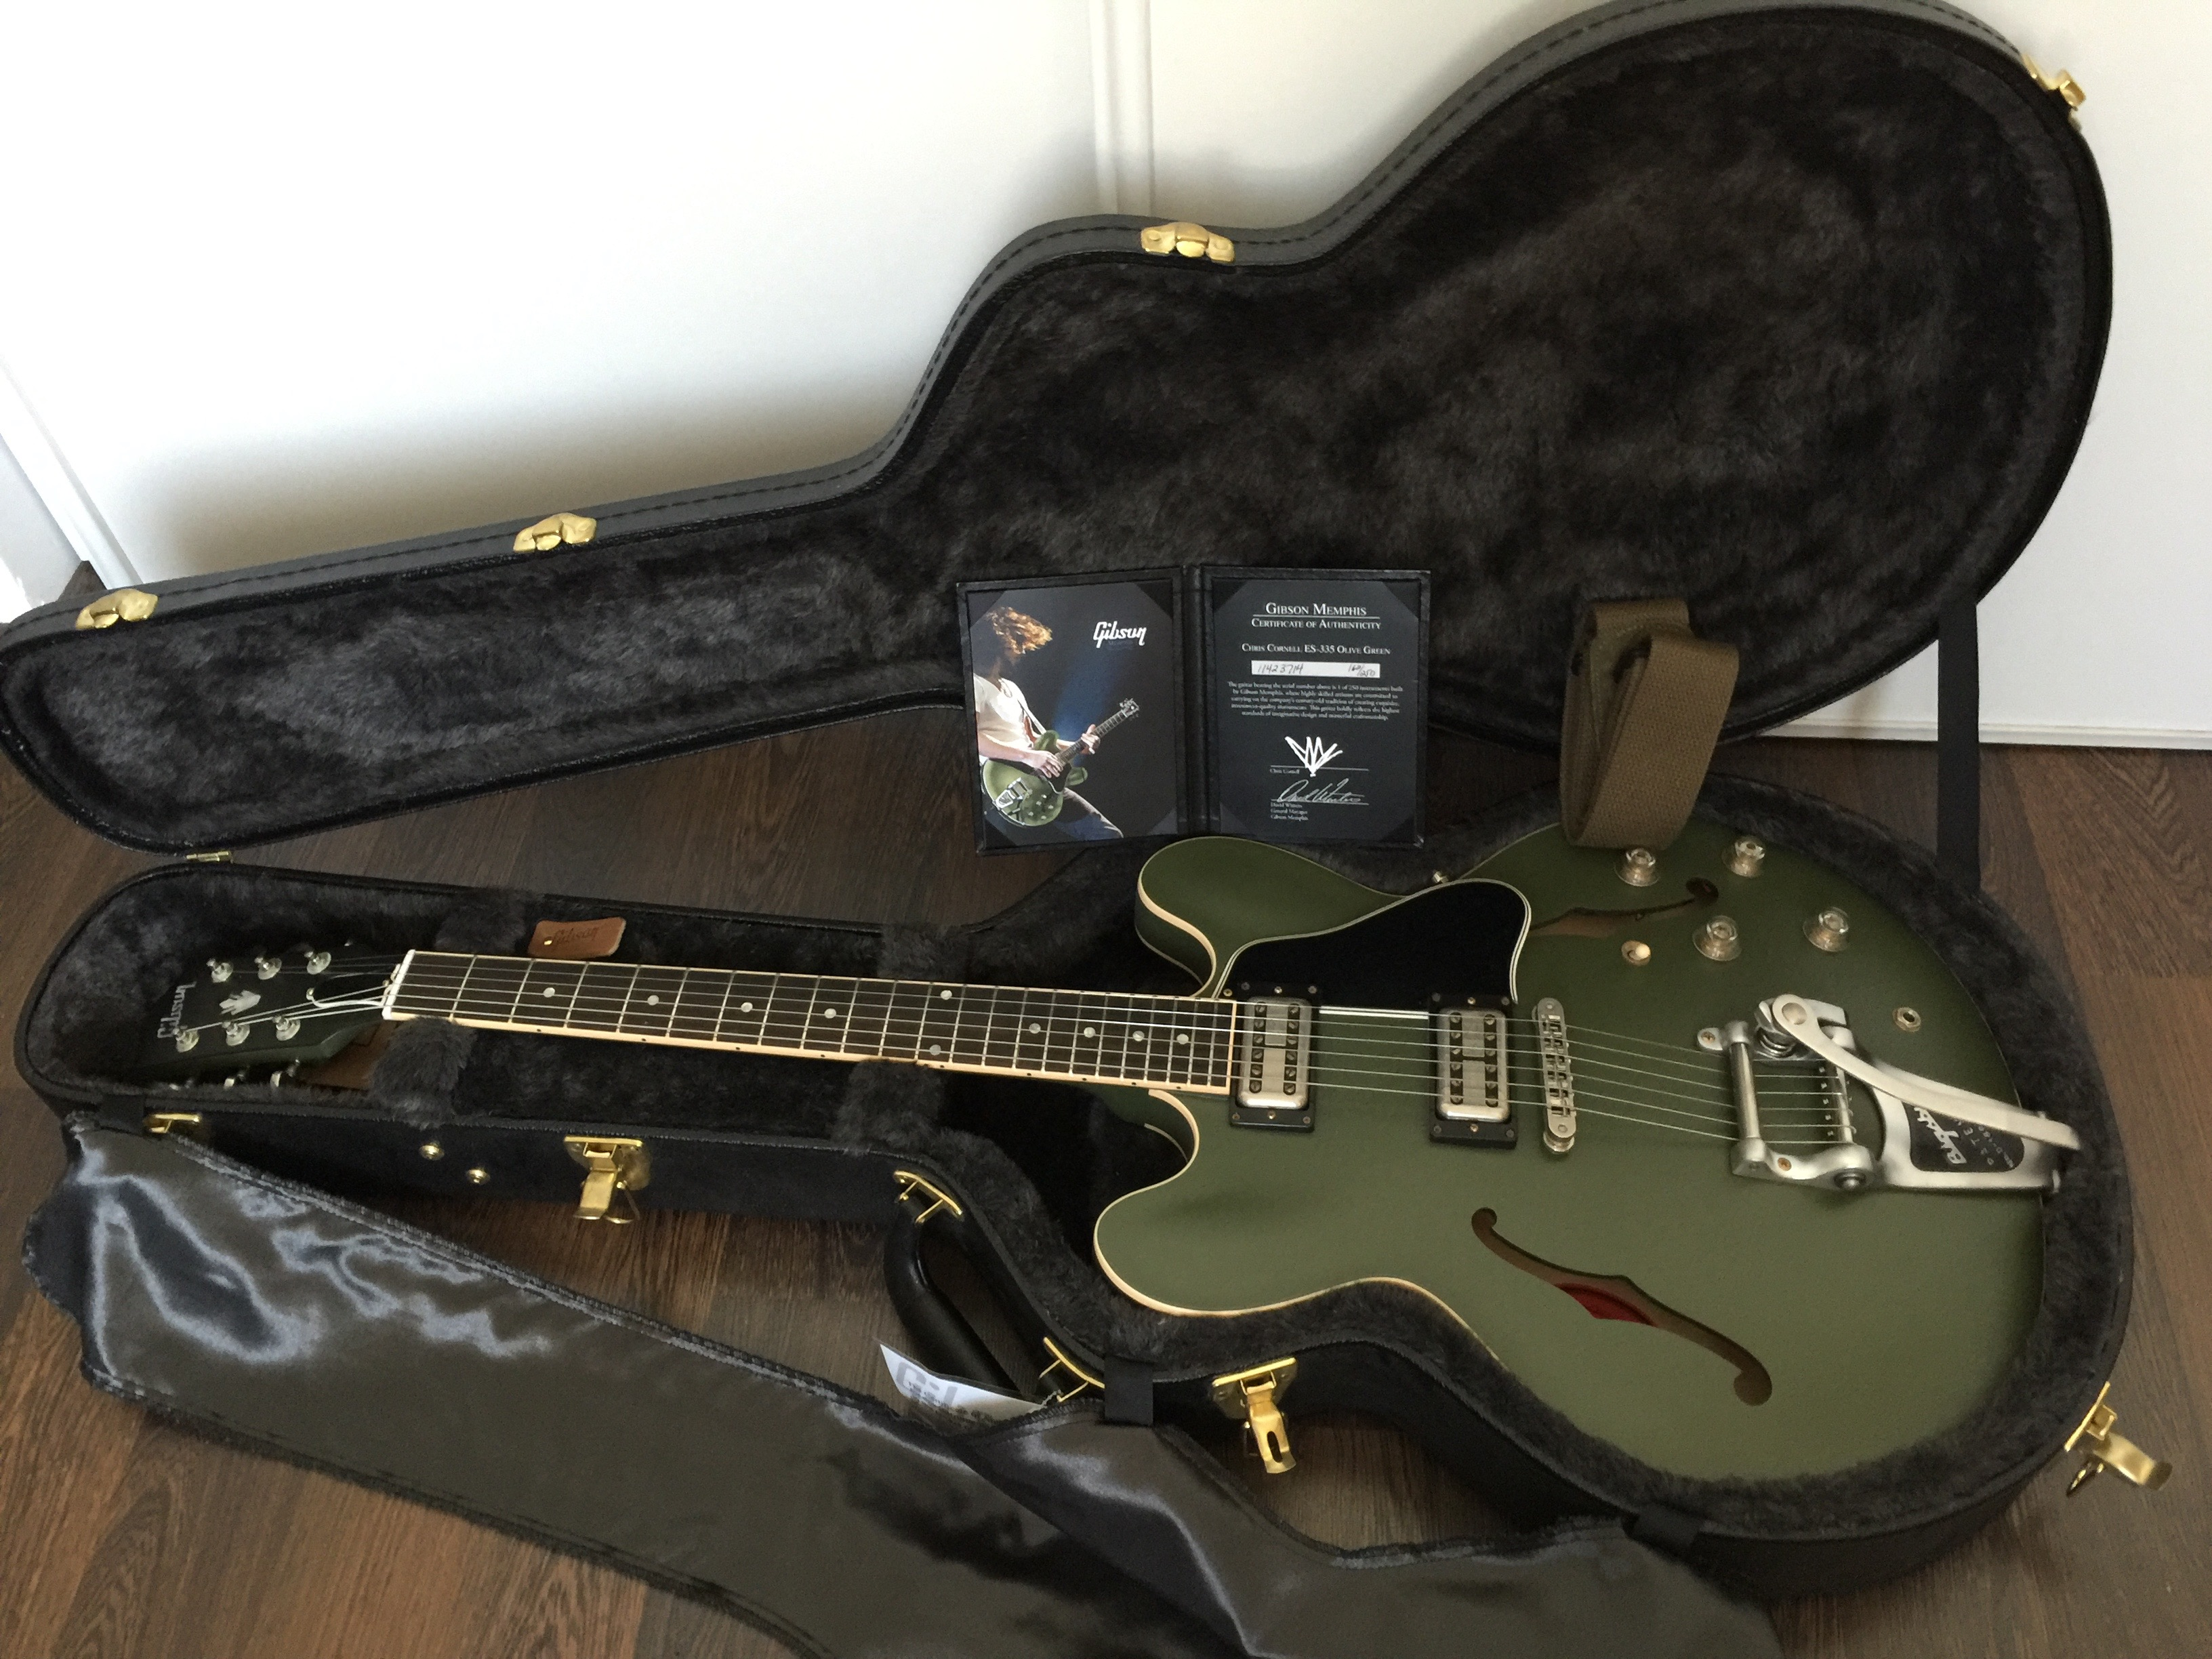 gibson chris cornell es 335 olive drab green image 1502261 audiofanzine. Black Bedroom Furniture Sets. Home Design Ideas